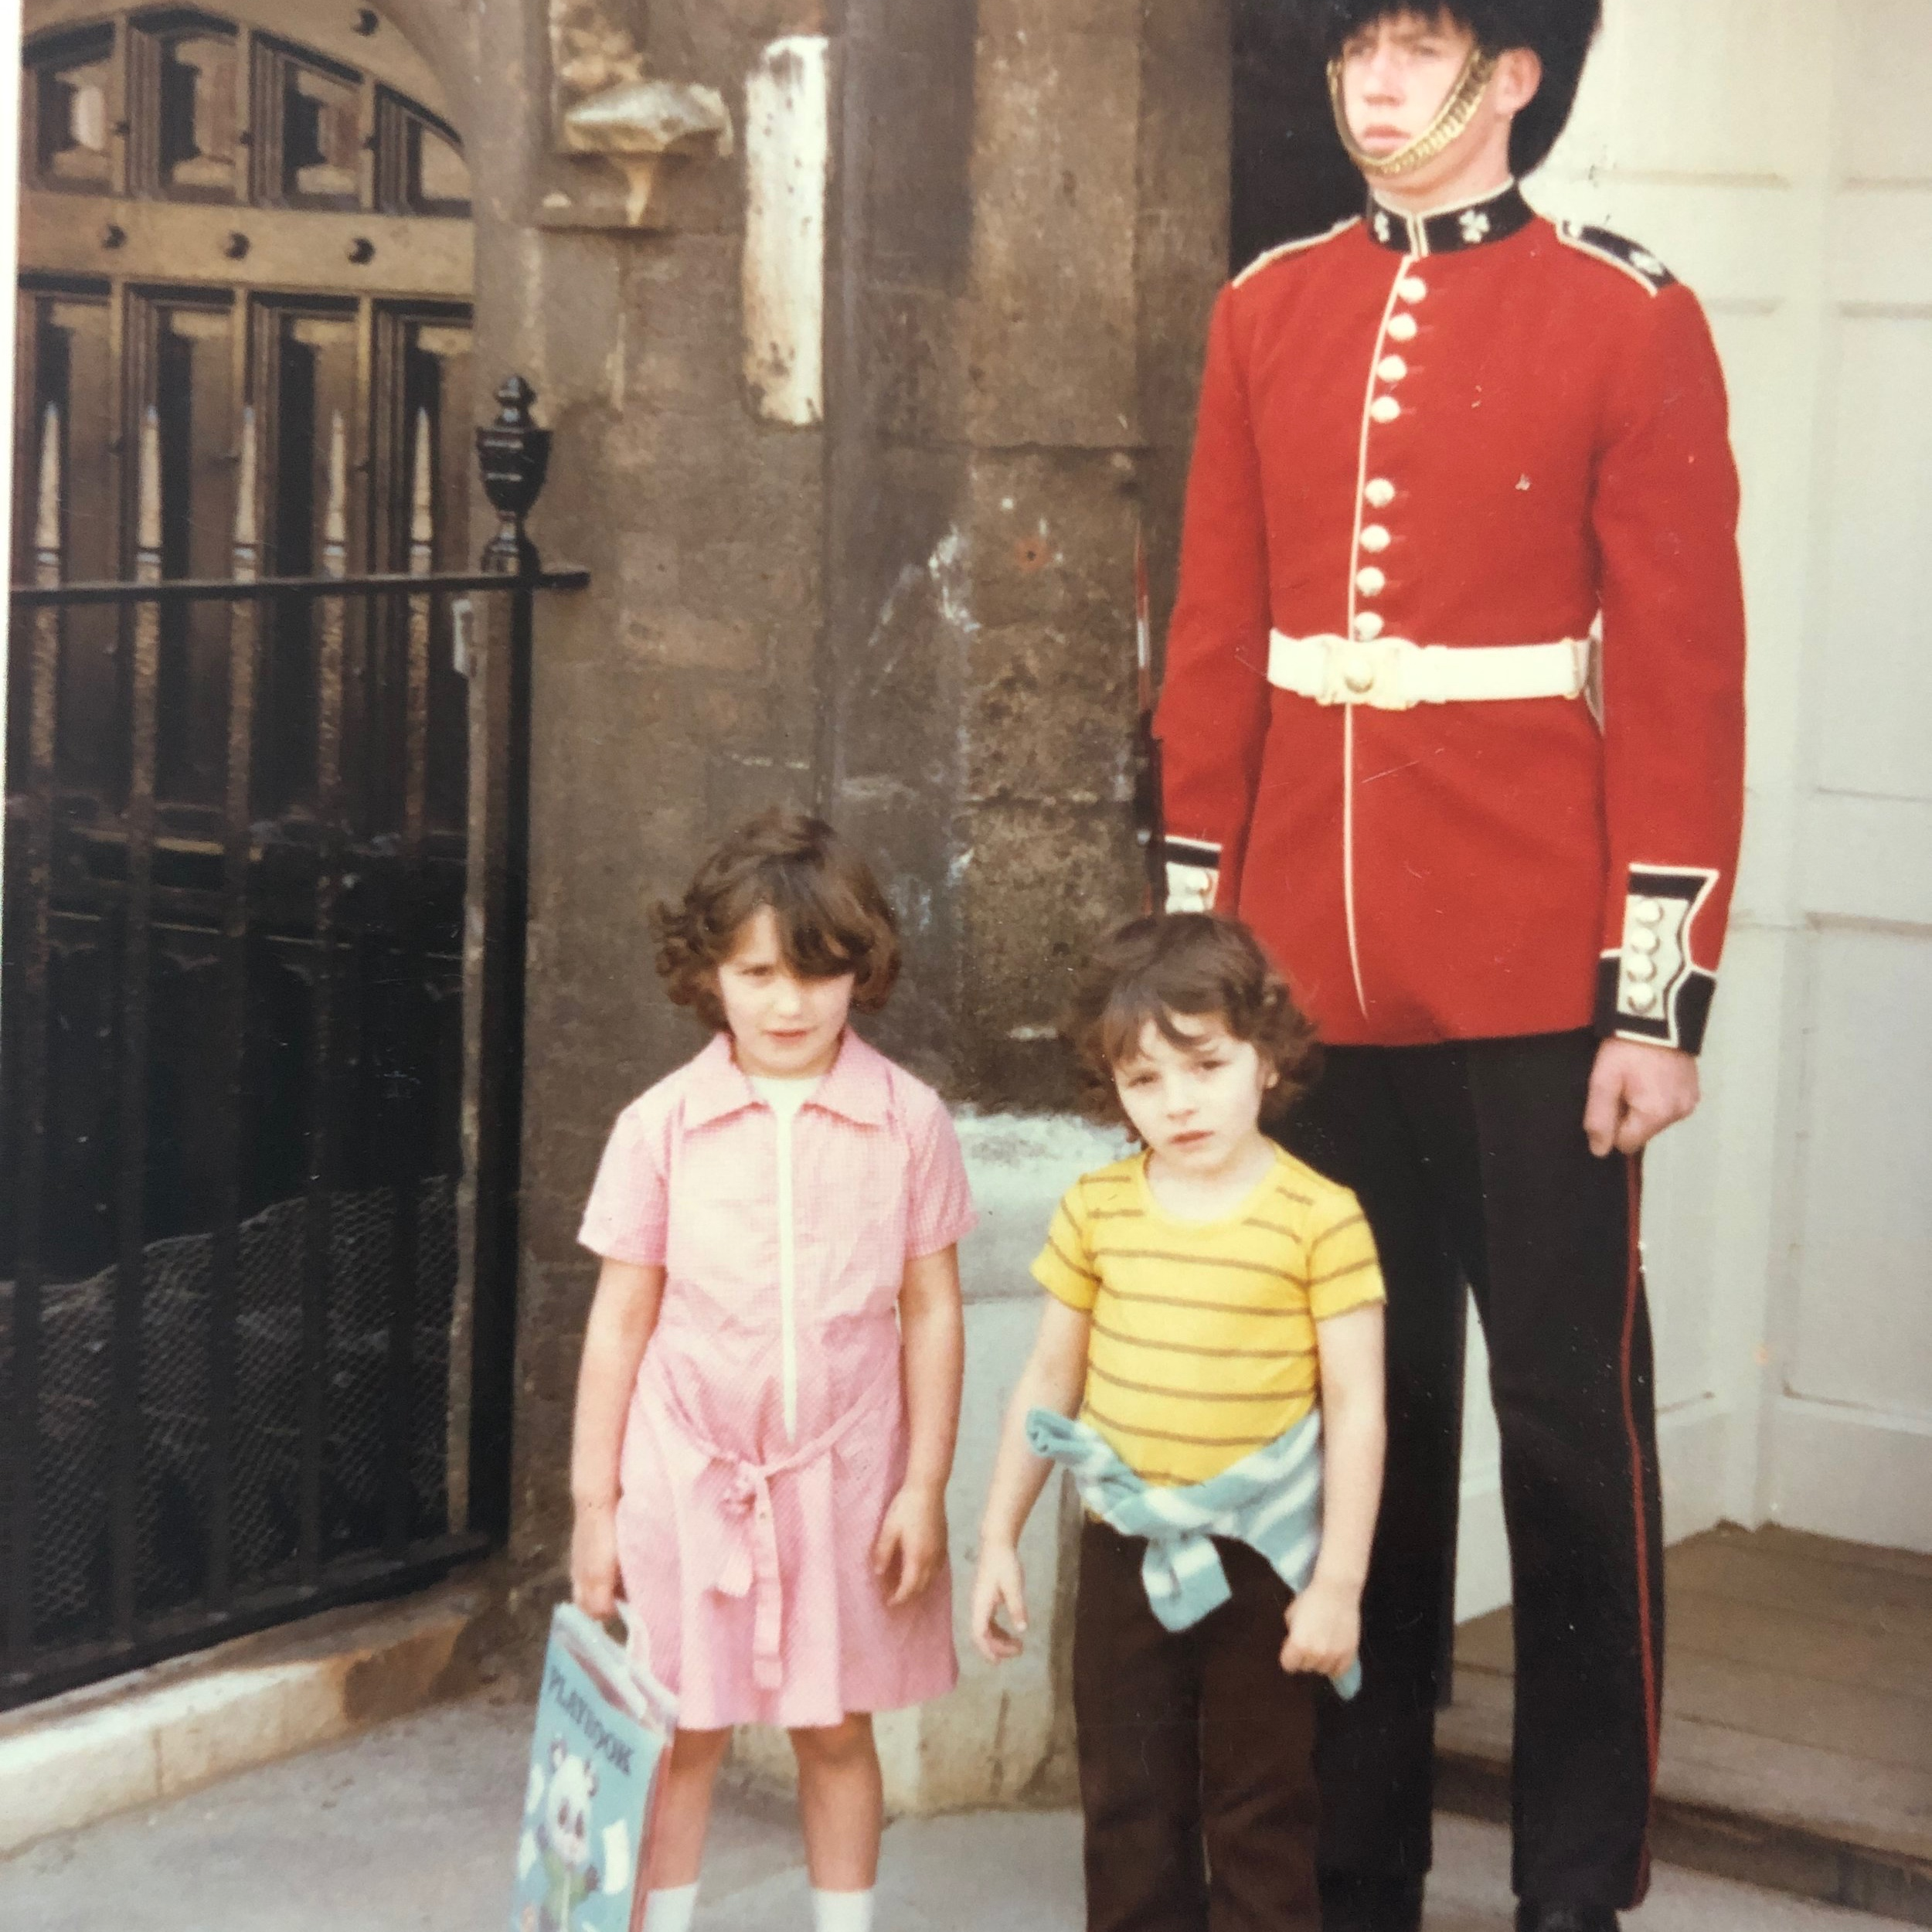 i arrived in england from spain when i was five, after my parentS divorceD. i couldn't speak any english in this picturE, but it didn't take me too long to learn. if only i could LEARN new languages as quickly now!